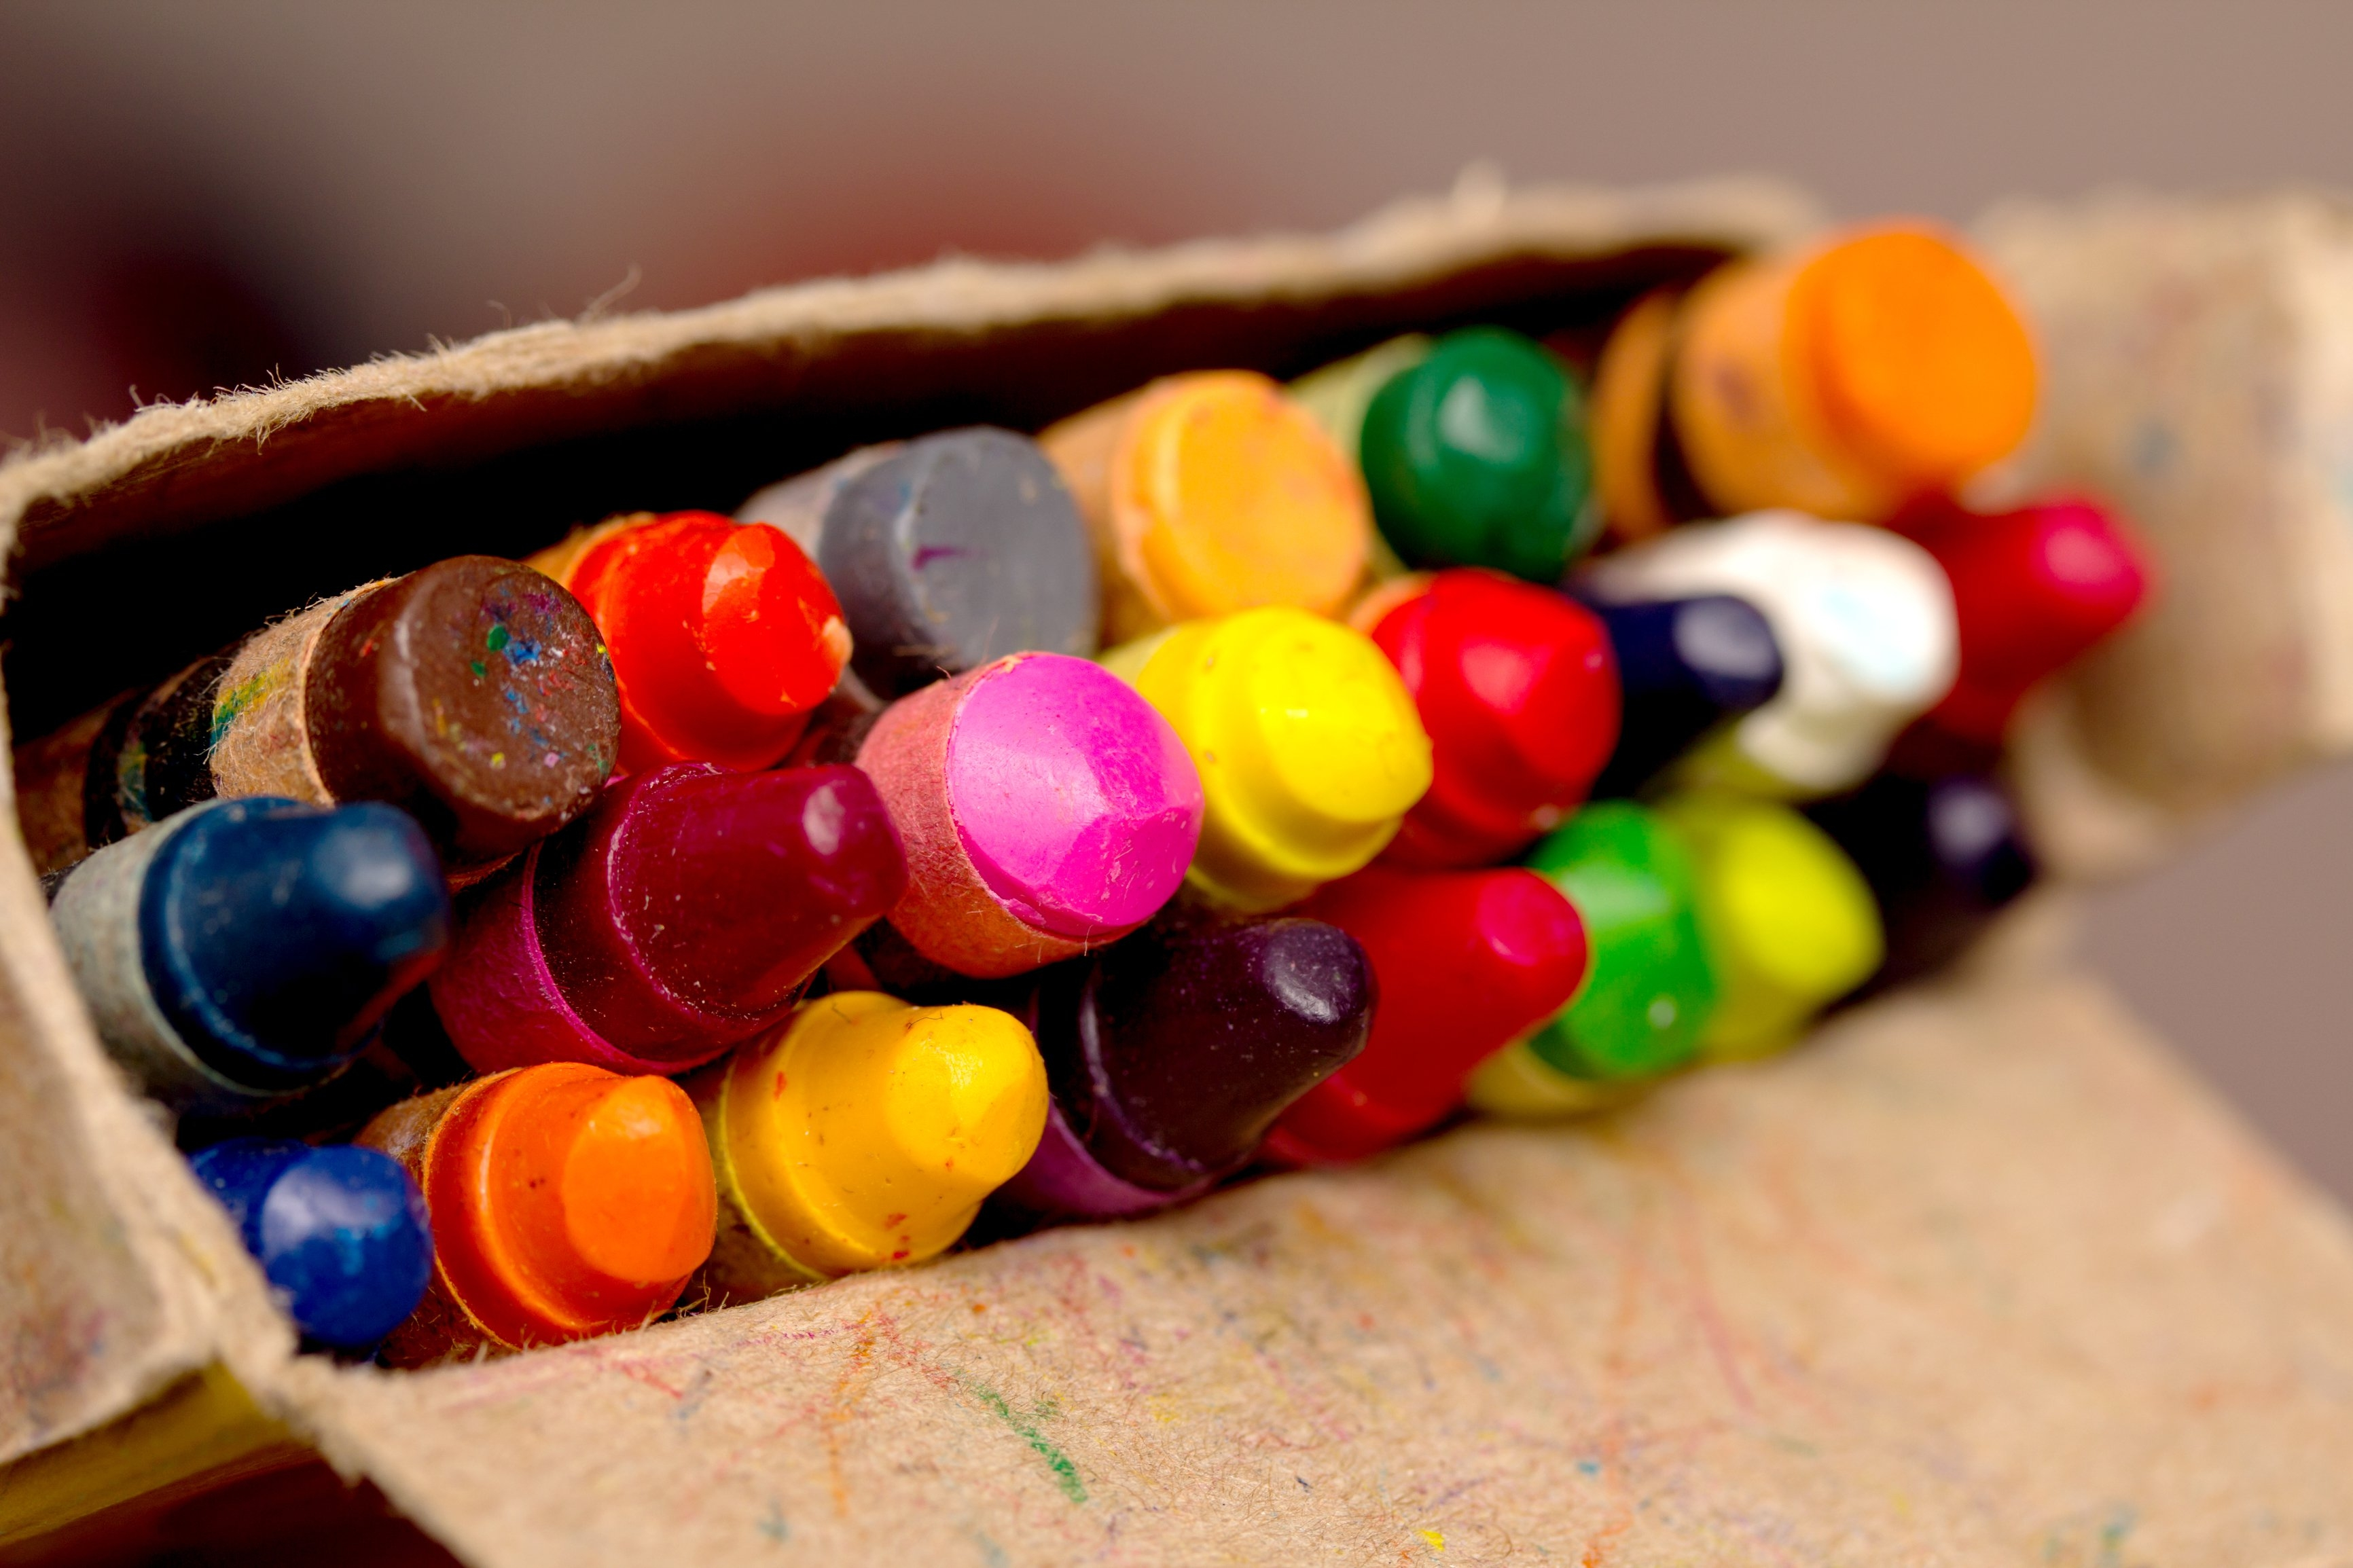 Crayola Crayon Day Days Of The Year